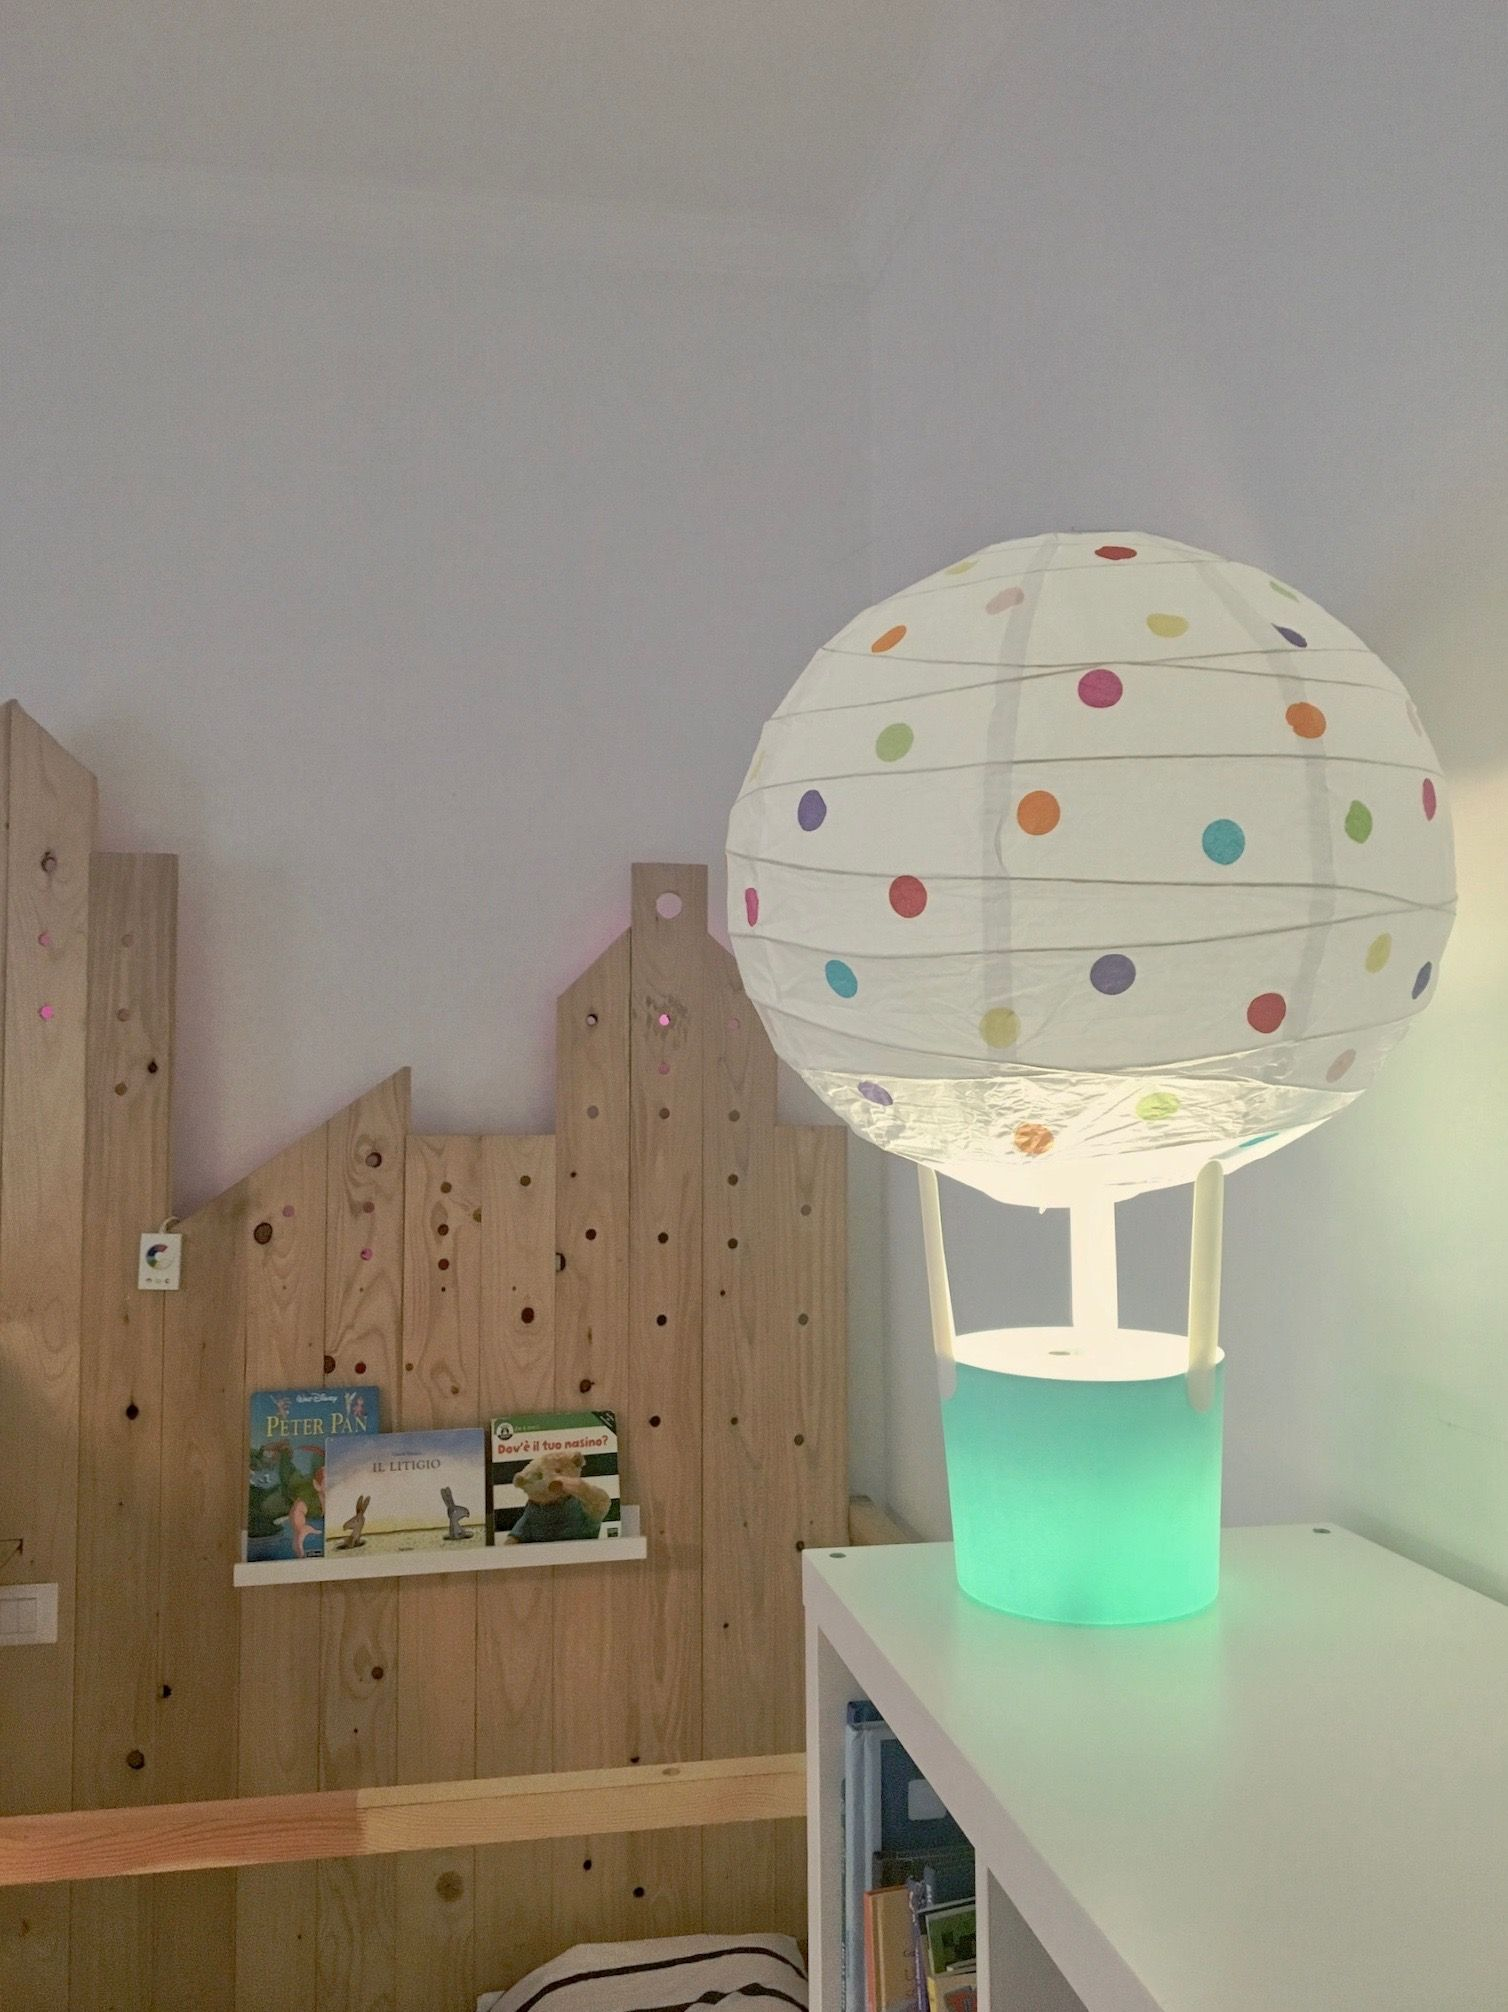 Ikea Hack Lampe Kinderzimmer Customiser La Lampe